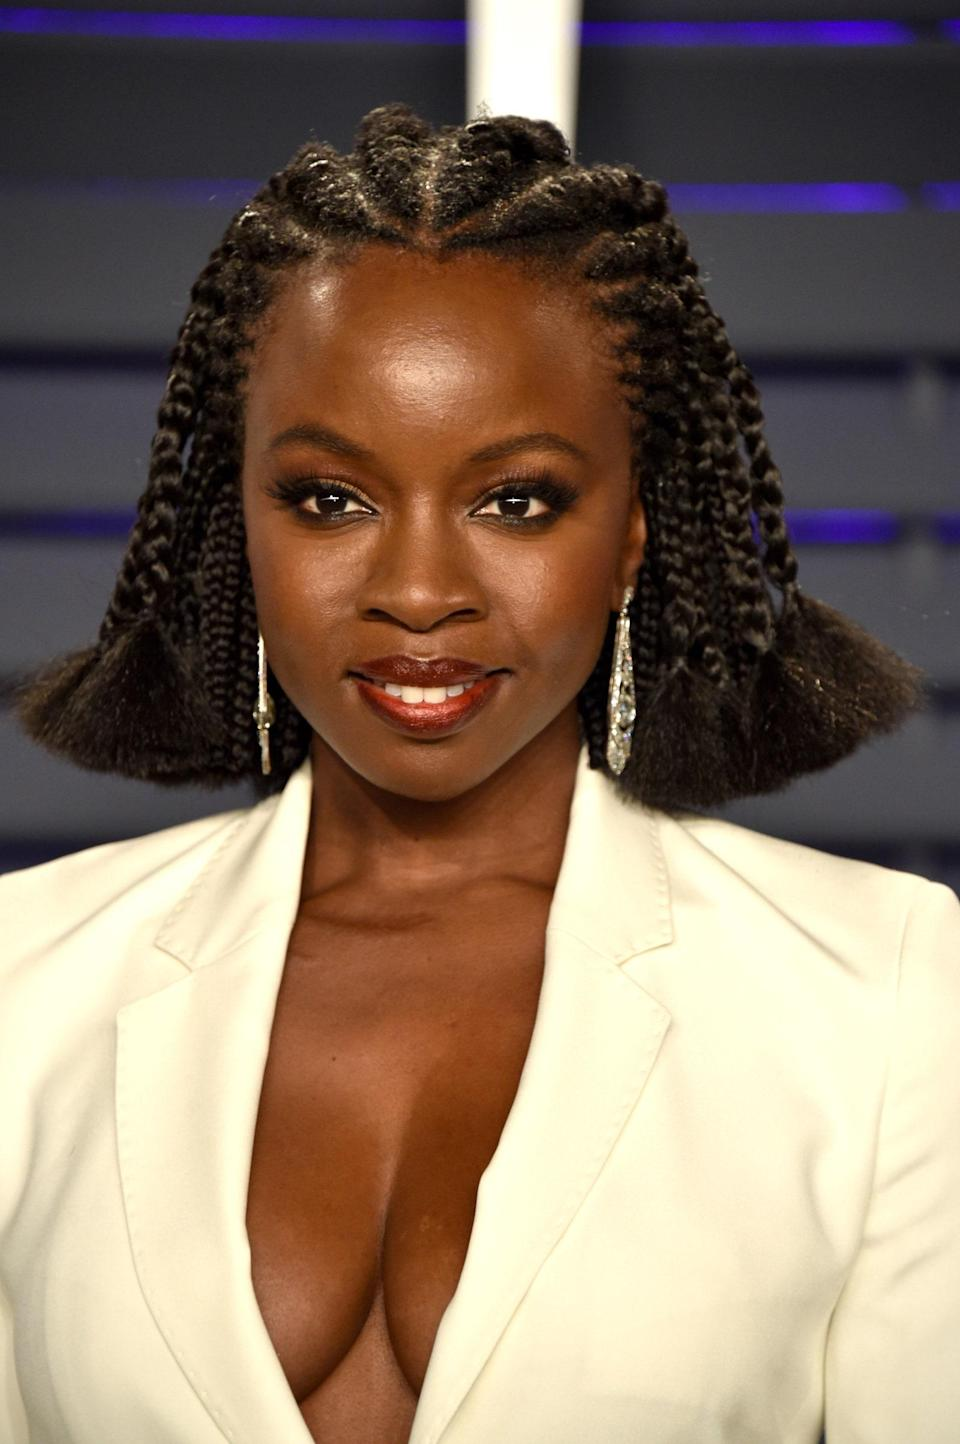 """<a href=""""https://www.glamour.com/gallery/fulani-braids-hairstyle-ideas?mbid=synd_yahoo_rss"""" rel=""""nofollow noopener"""" target=""""_blank"""" data-ylk=""""slk:Fulani braids"""" class=""""link rapid-noclick-resp"""">Fulani braids</a> don't have to be long. As Danai Gurira proves, they look incredible when they hit just above your shoulders. Flared ends make the style even cooler."""